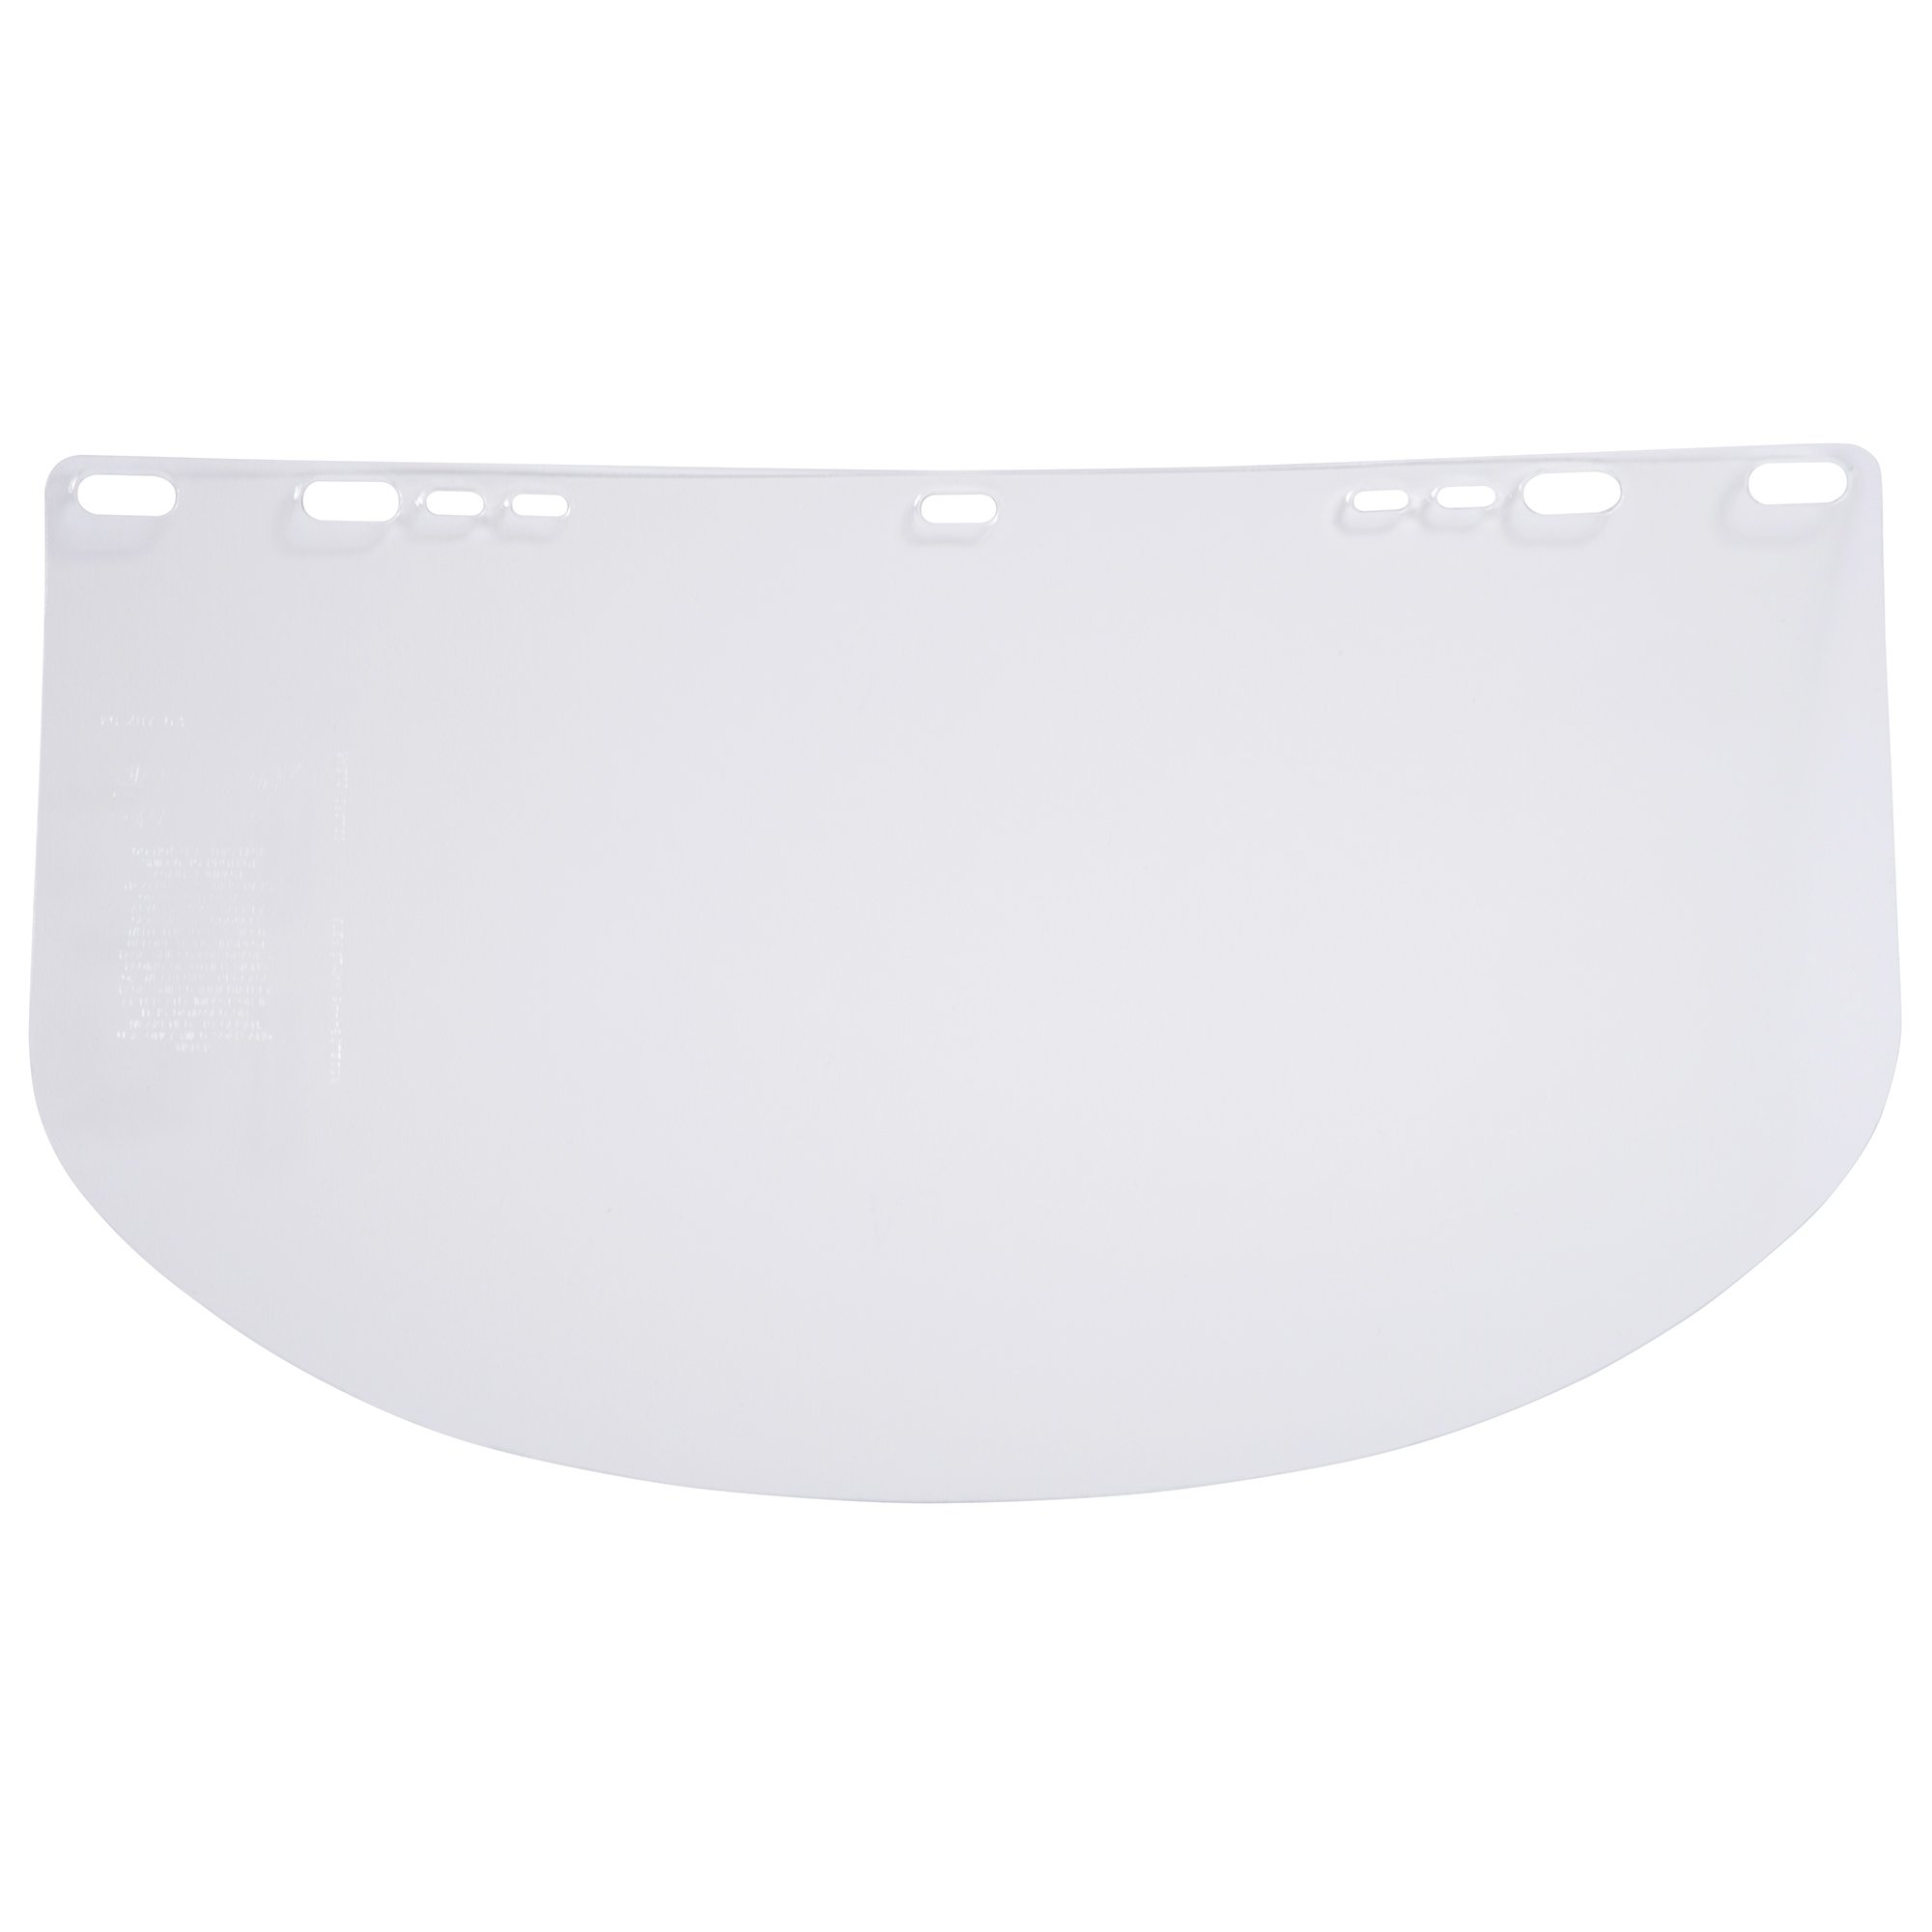 "Jackson Safety F10 PETG Face Shield (28963), 9"" x 15.5"" Clear, Unbound, Disposable Face Protection, 50 Shields / Case"